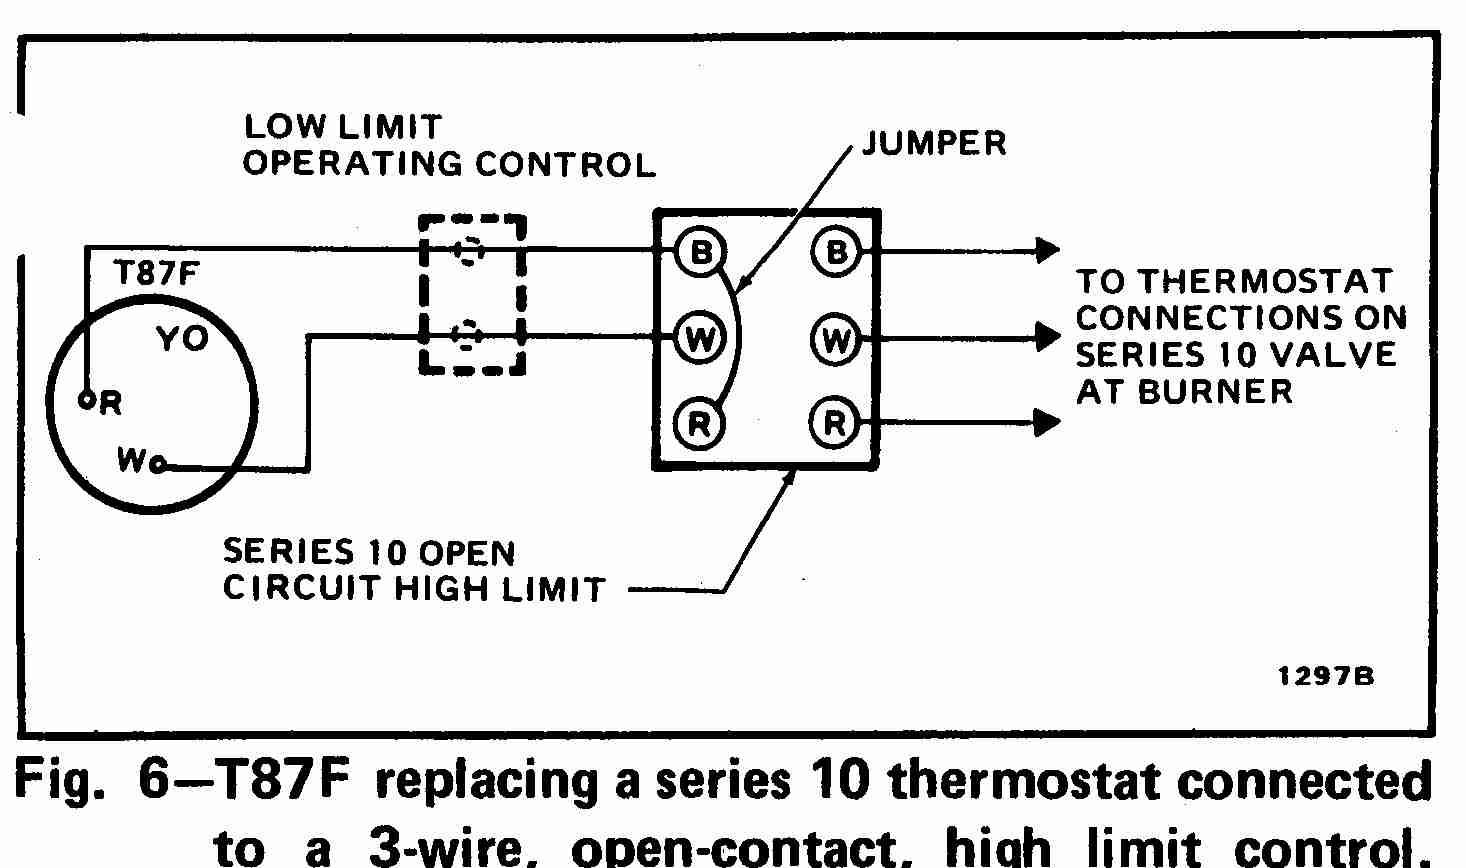 room thermostat wiring diagrams for hvac systems rh inspectapedia com wiring diagram for thermostat honeywell wiring diagram for thermostat honeywell